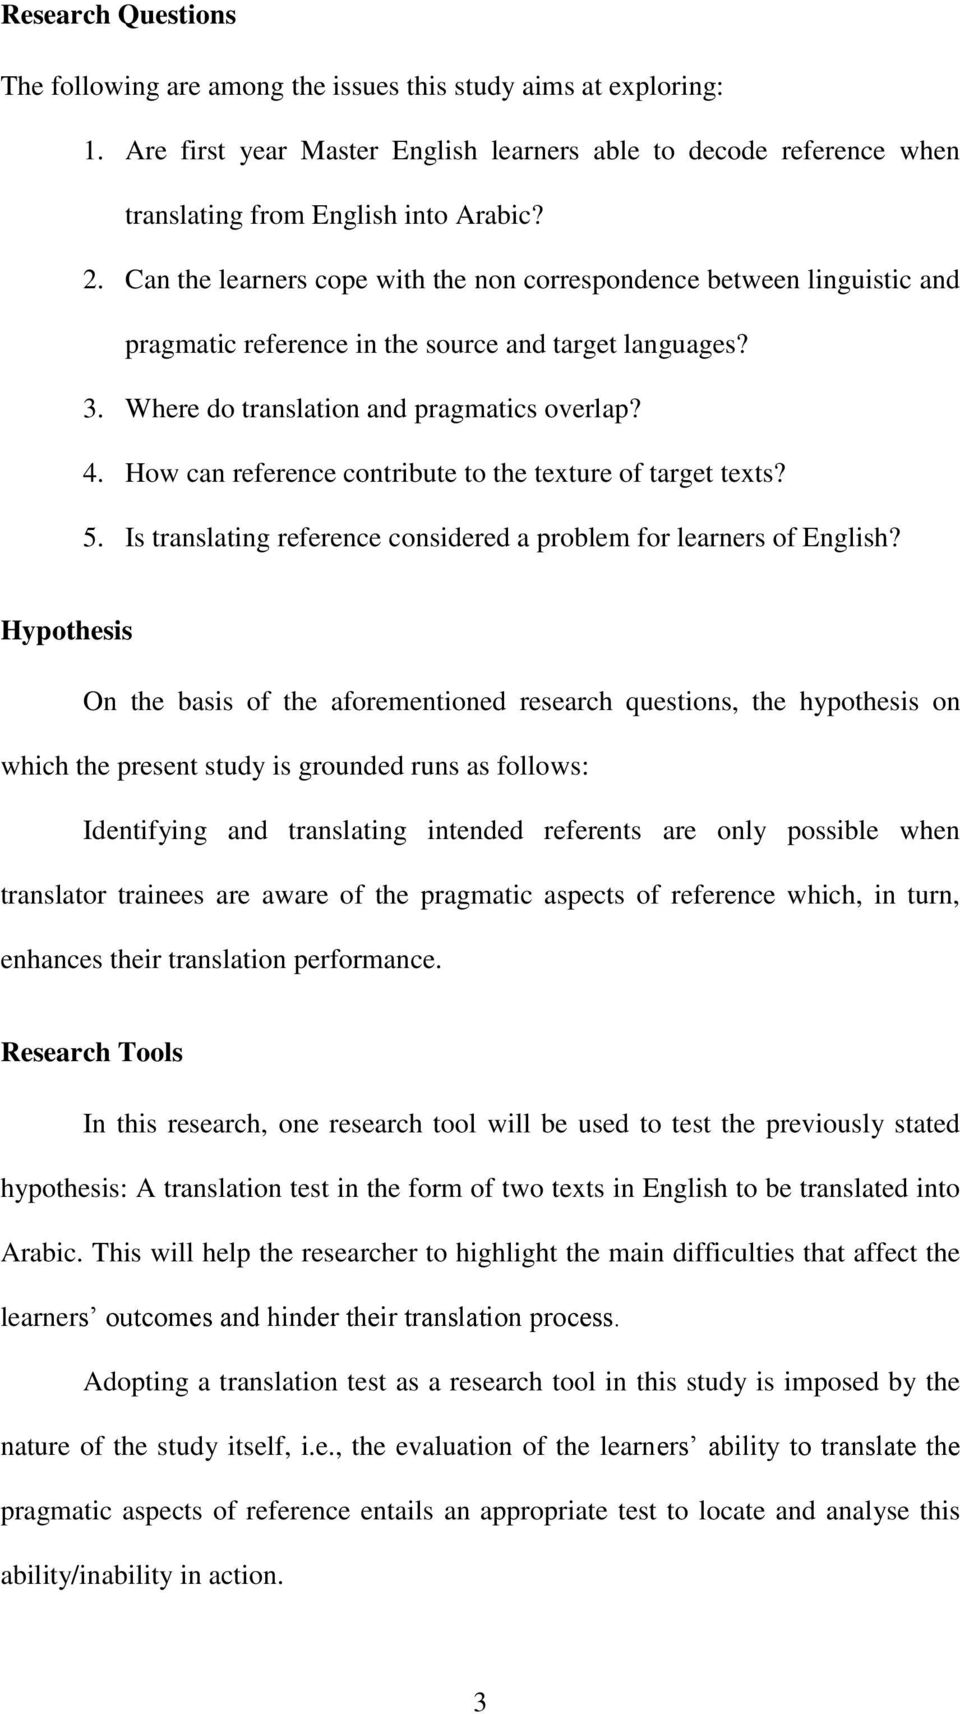 How can reference contribute to the texture of target texts? 5. Is translating reference considered a problem for learners of English?